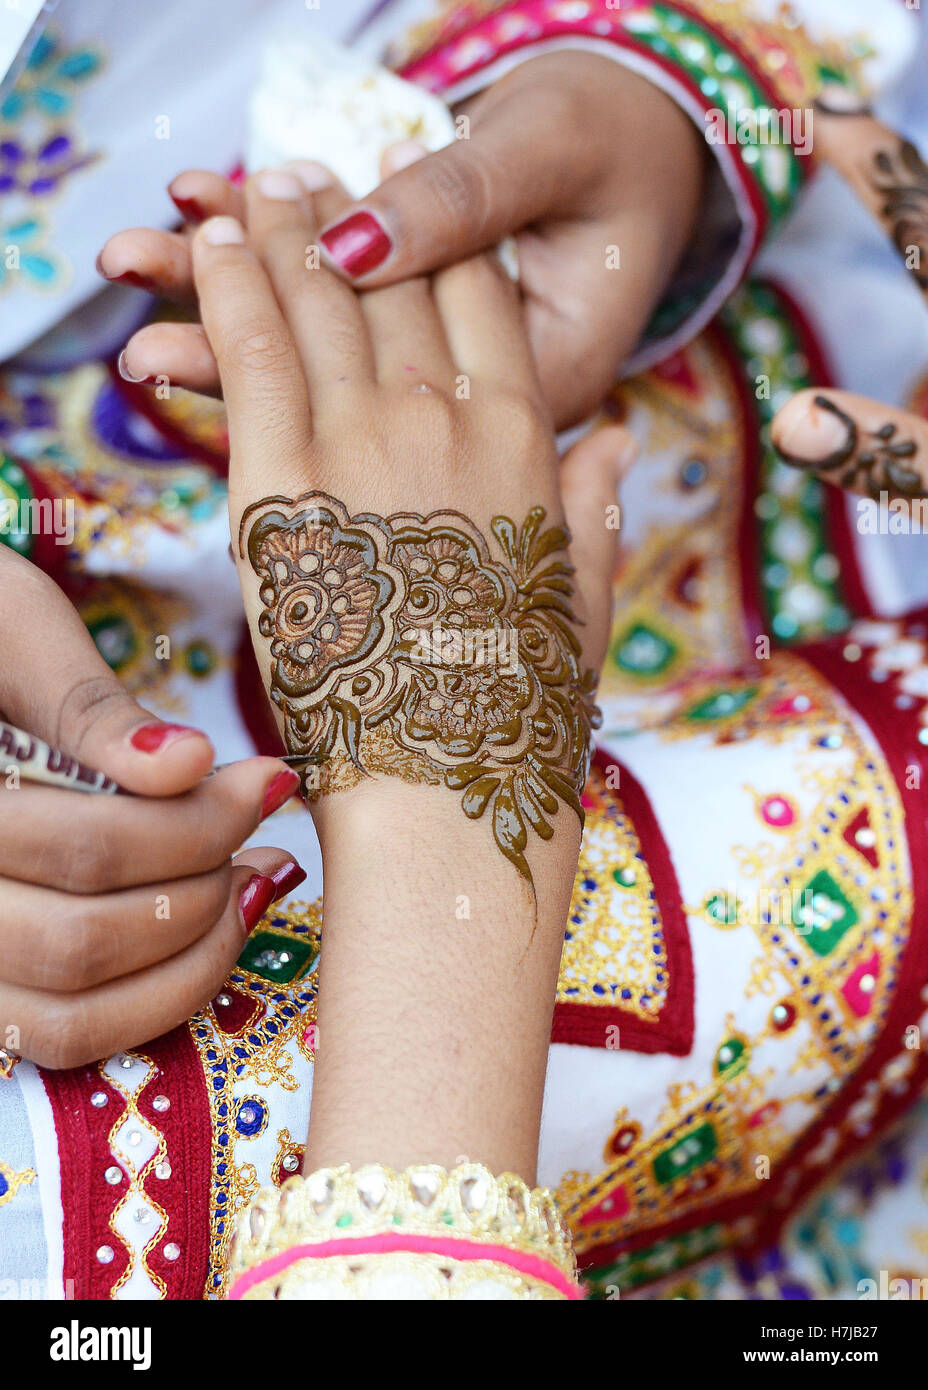 A Young Girl Has A Henna Hand Tattoo Applied As The Prince Of Wales